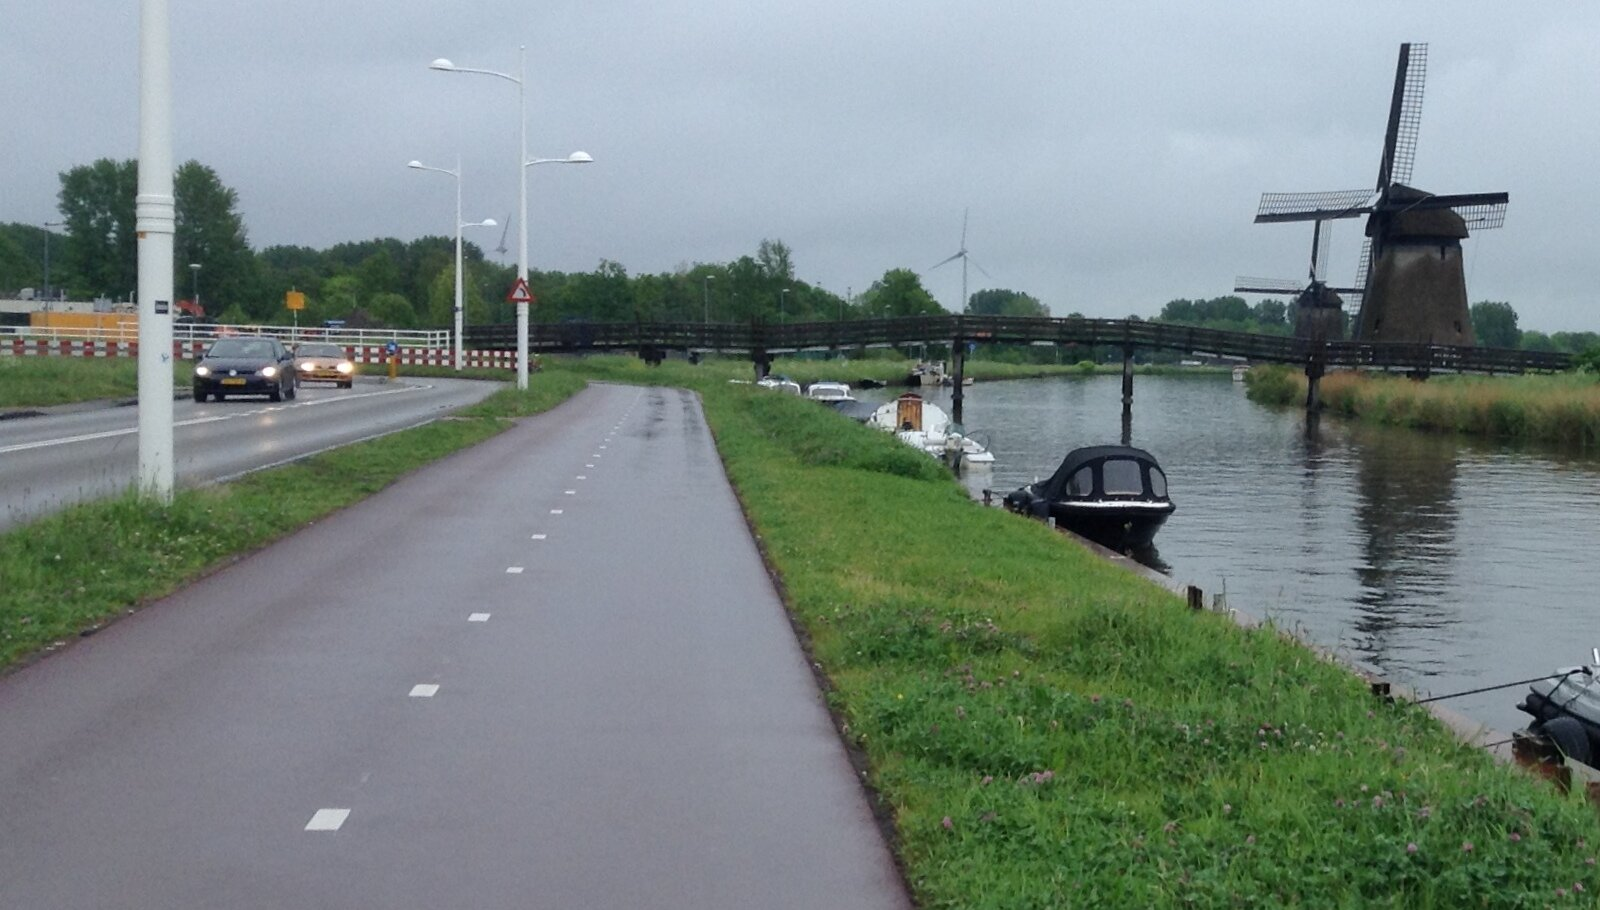 Dedicated Cycling lane between canal and the roadway